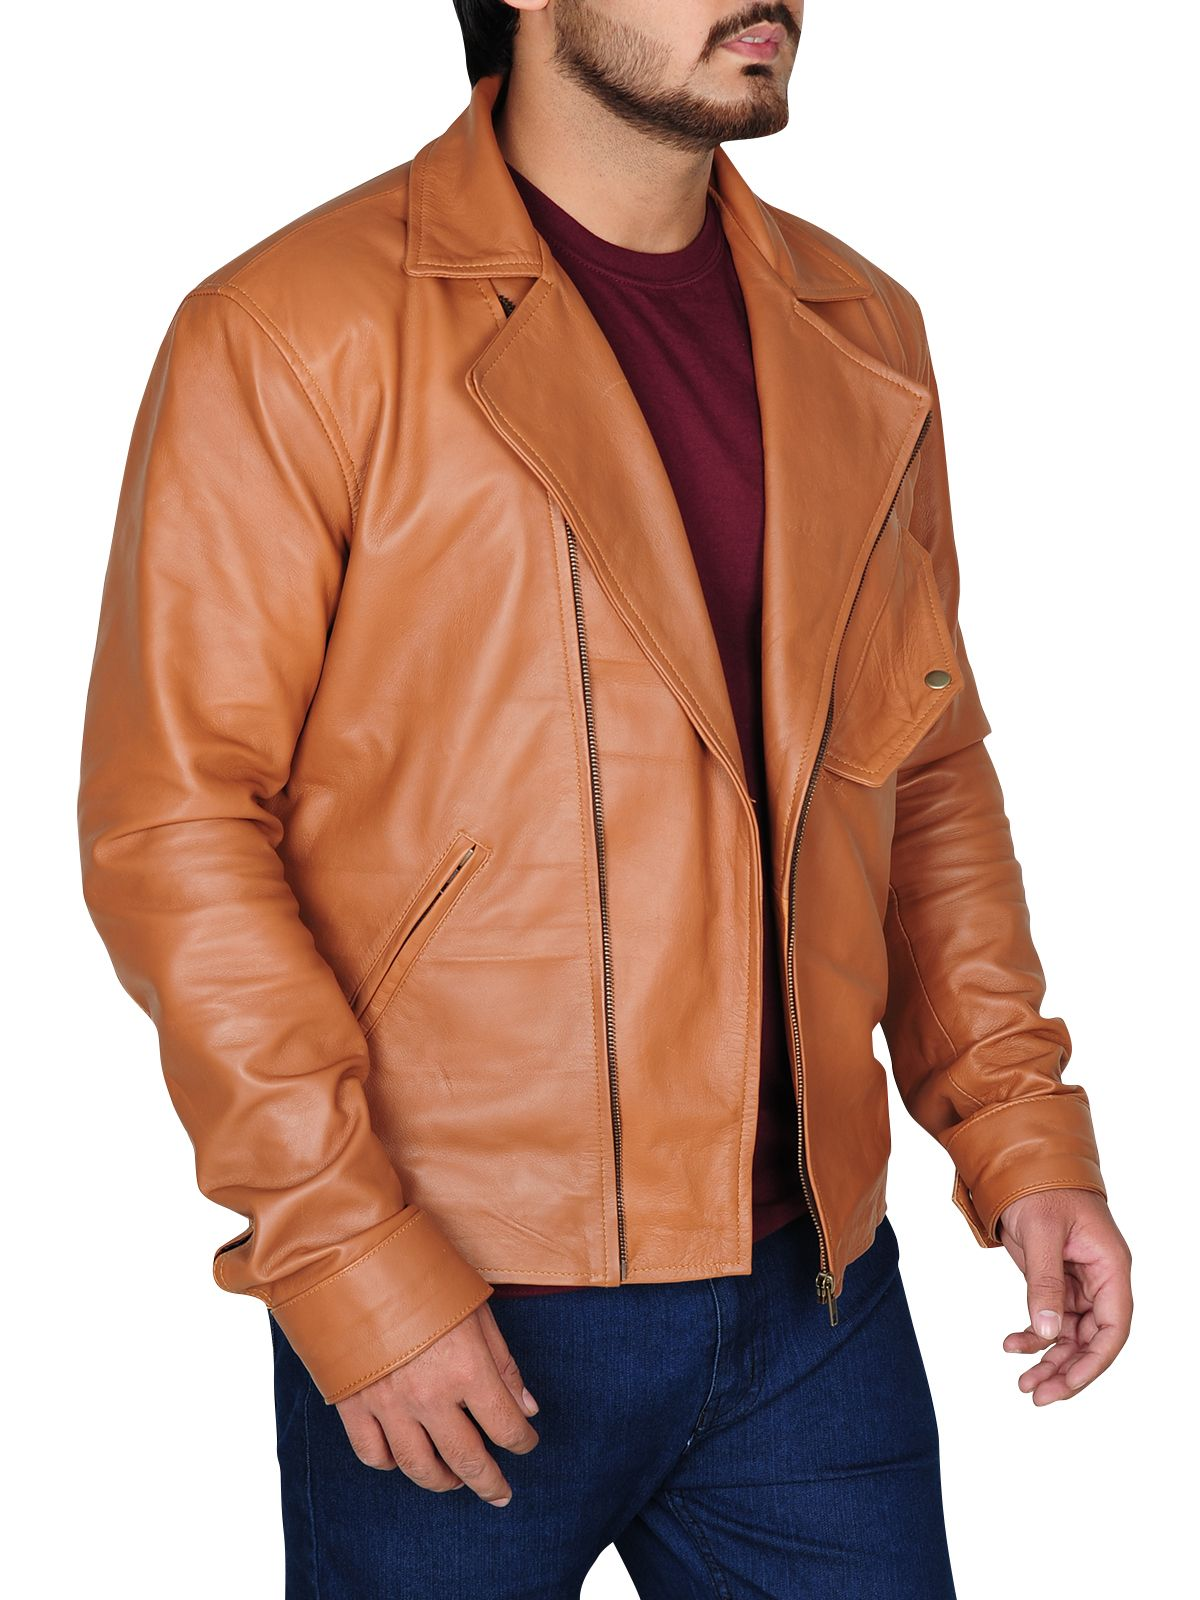 Classy Tawny Brown Leather Jacket (With images) Leather